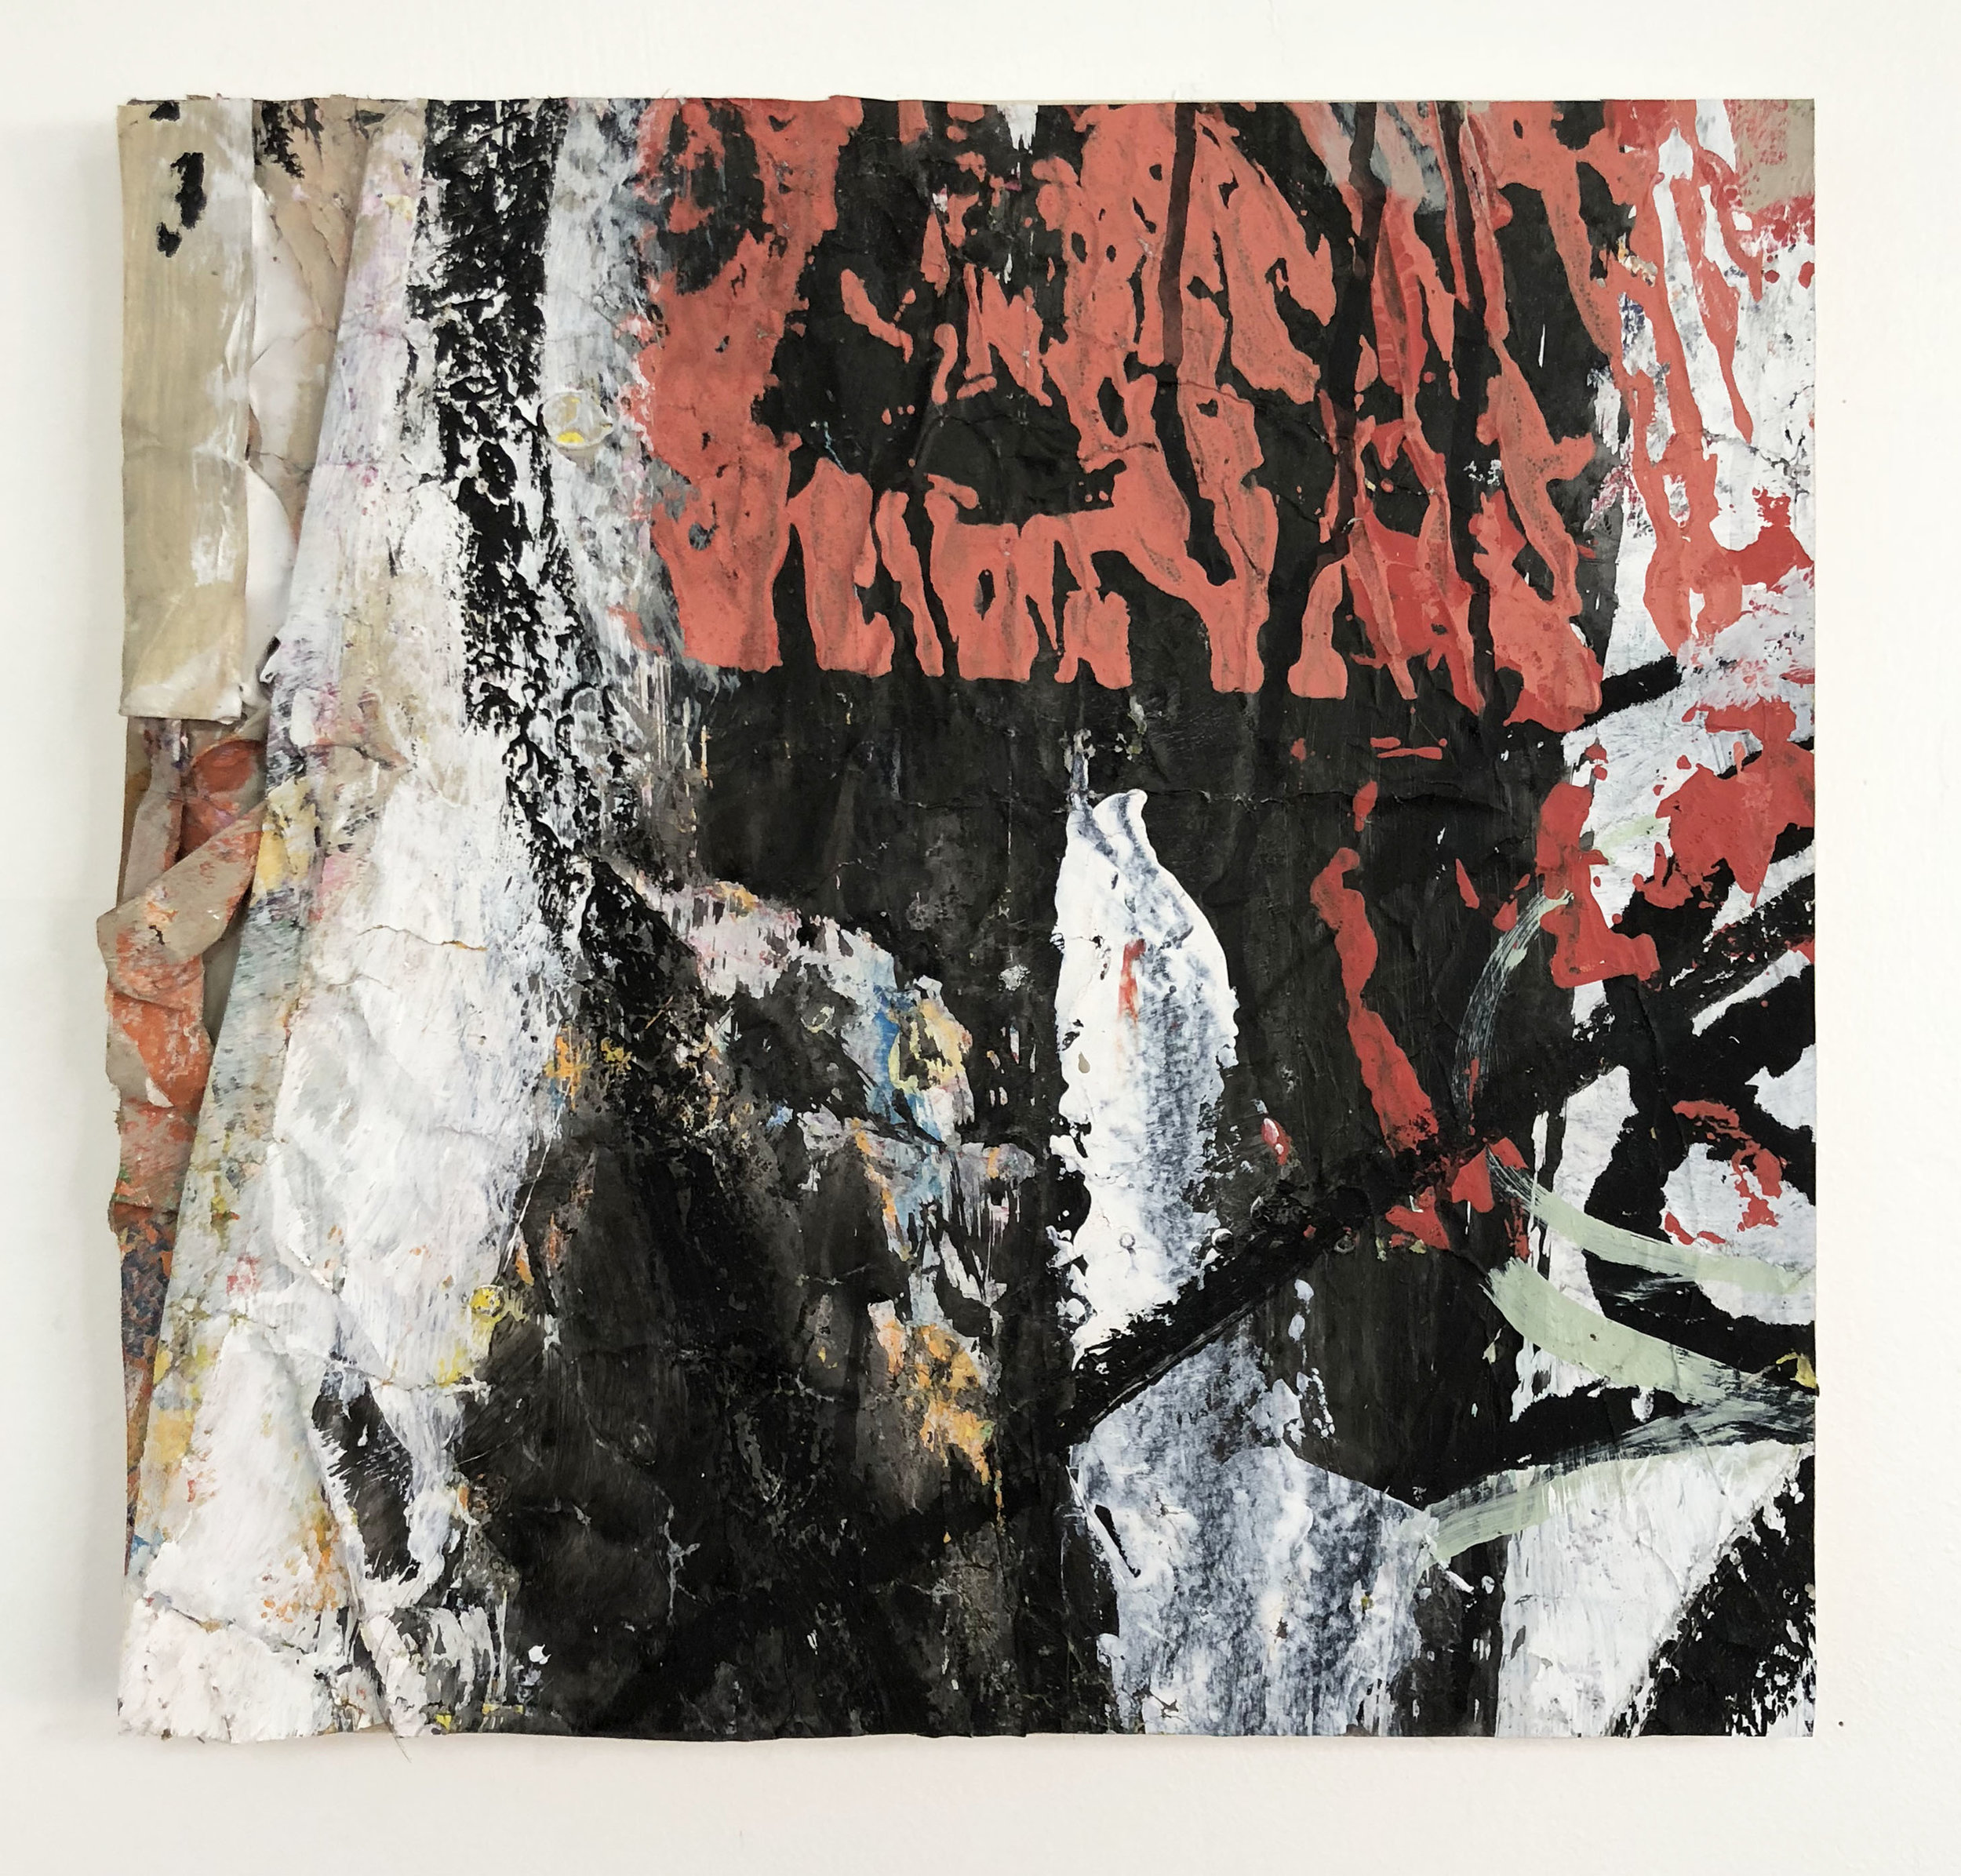 A Heavy Hand Like a Ton of Bricks,  2016-18, Collage, charcoal, acrylic, oil, ink, serigraphy on panel